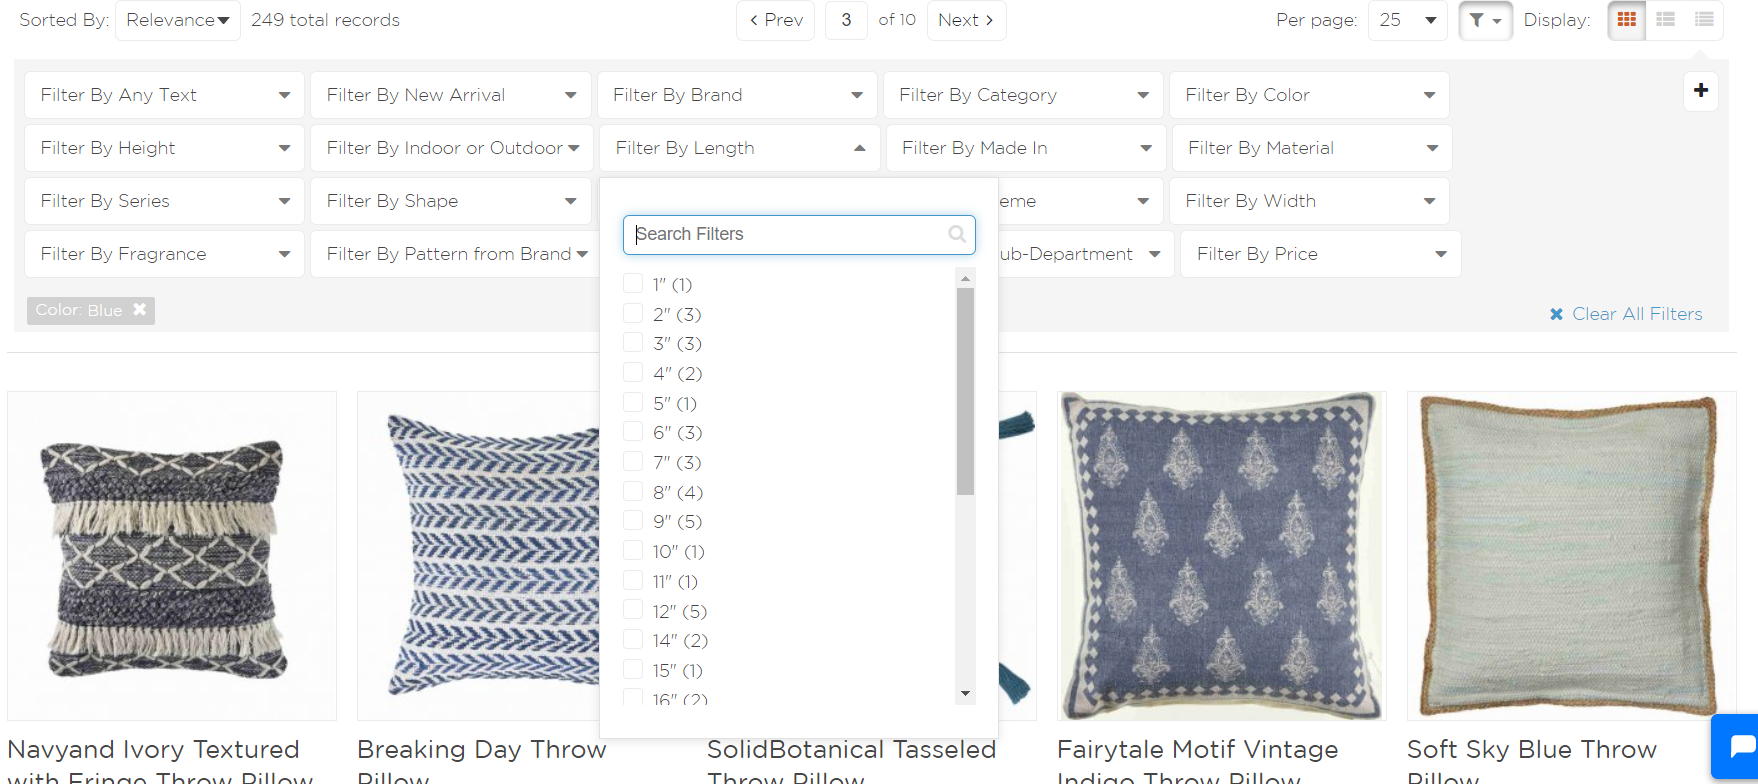 Automate Product Classification For eCommerce Filtering & Search